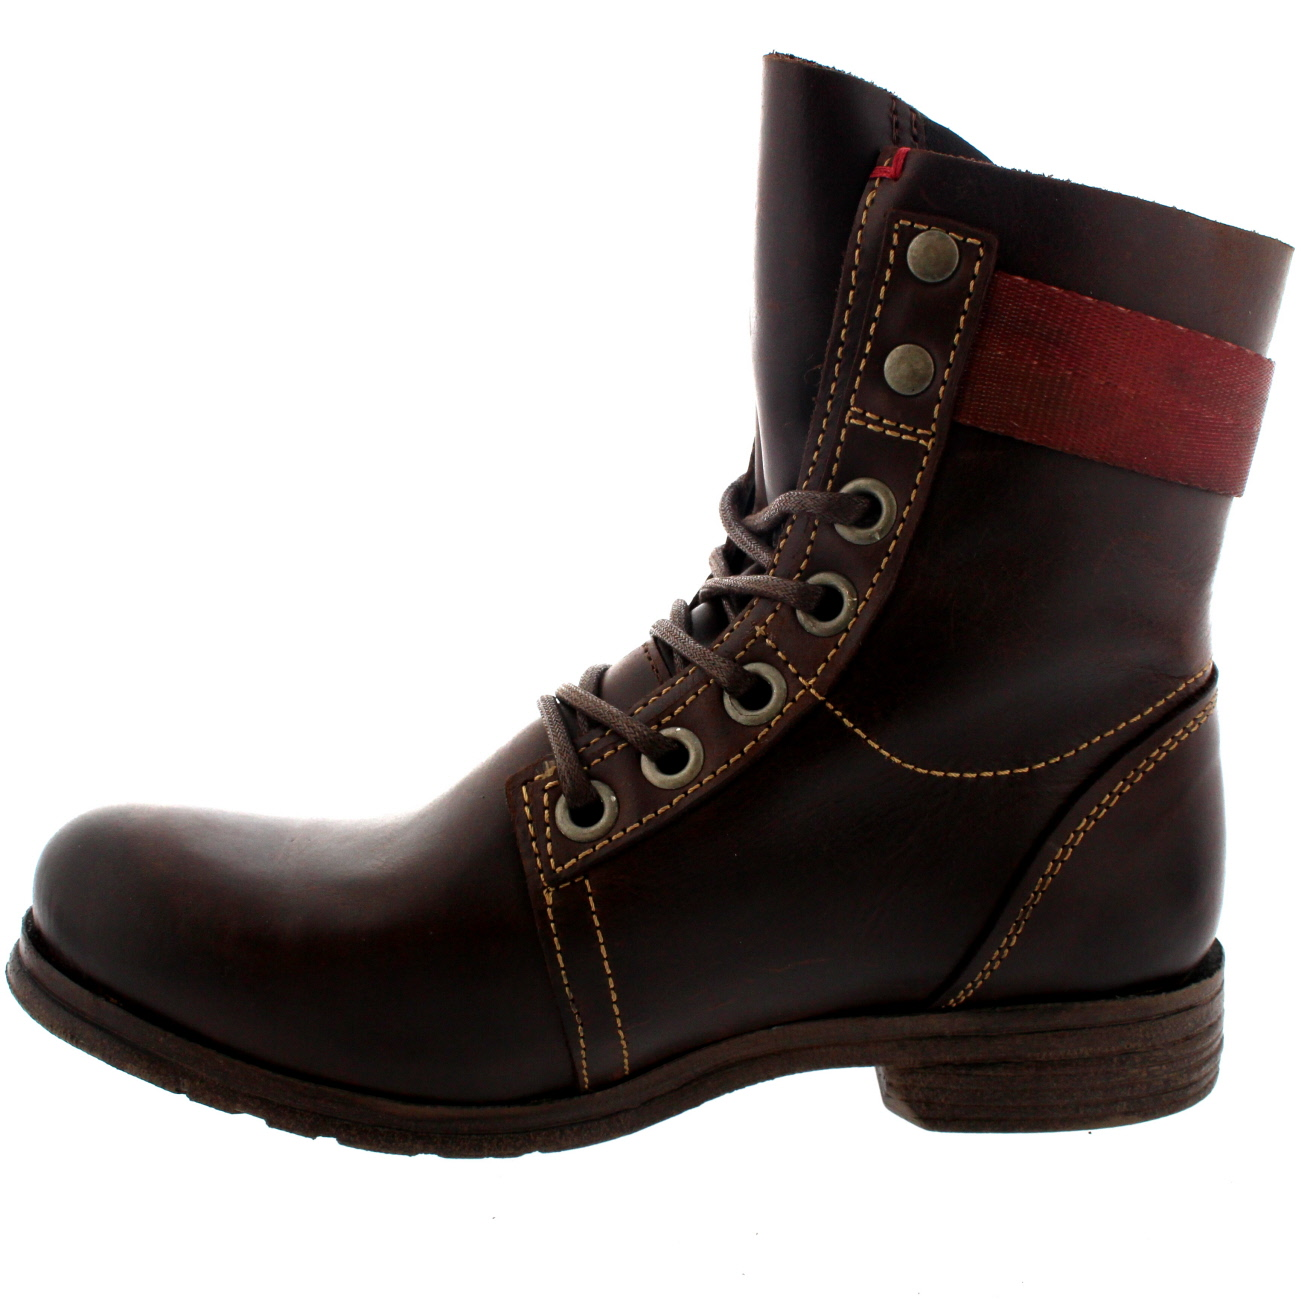 bfbdd0560eb Womens Fly London Stay Lace Up Leather Buckle Military Biker Ankle ...